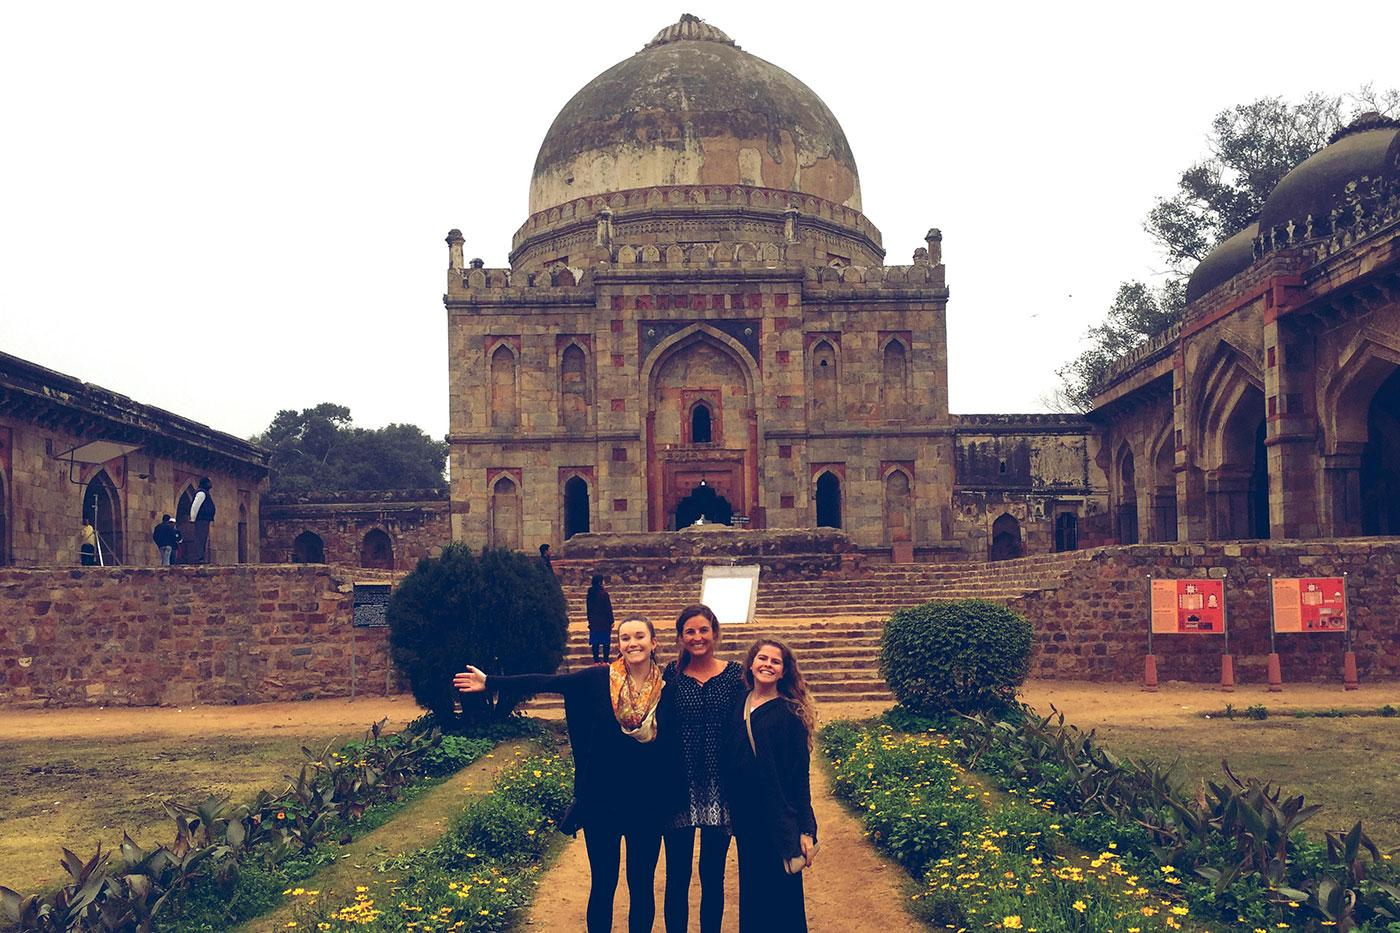 A trio of students visit the Old Fort in New Delhi.